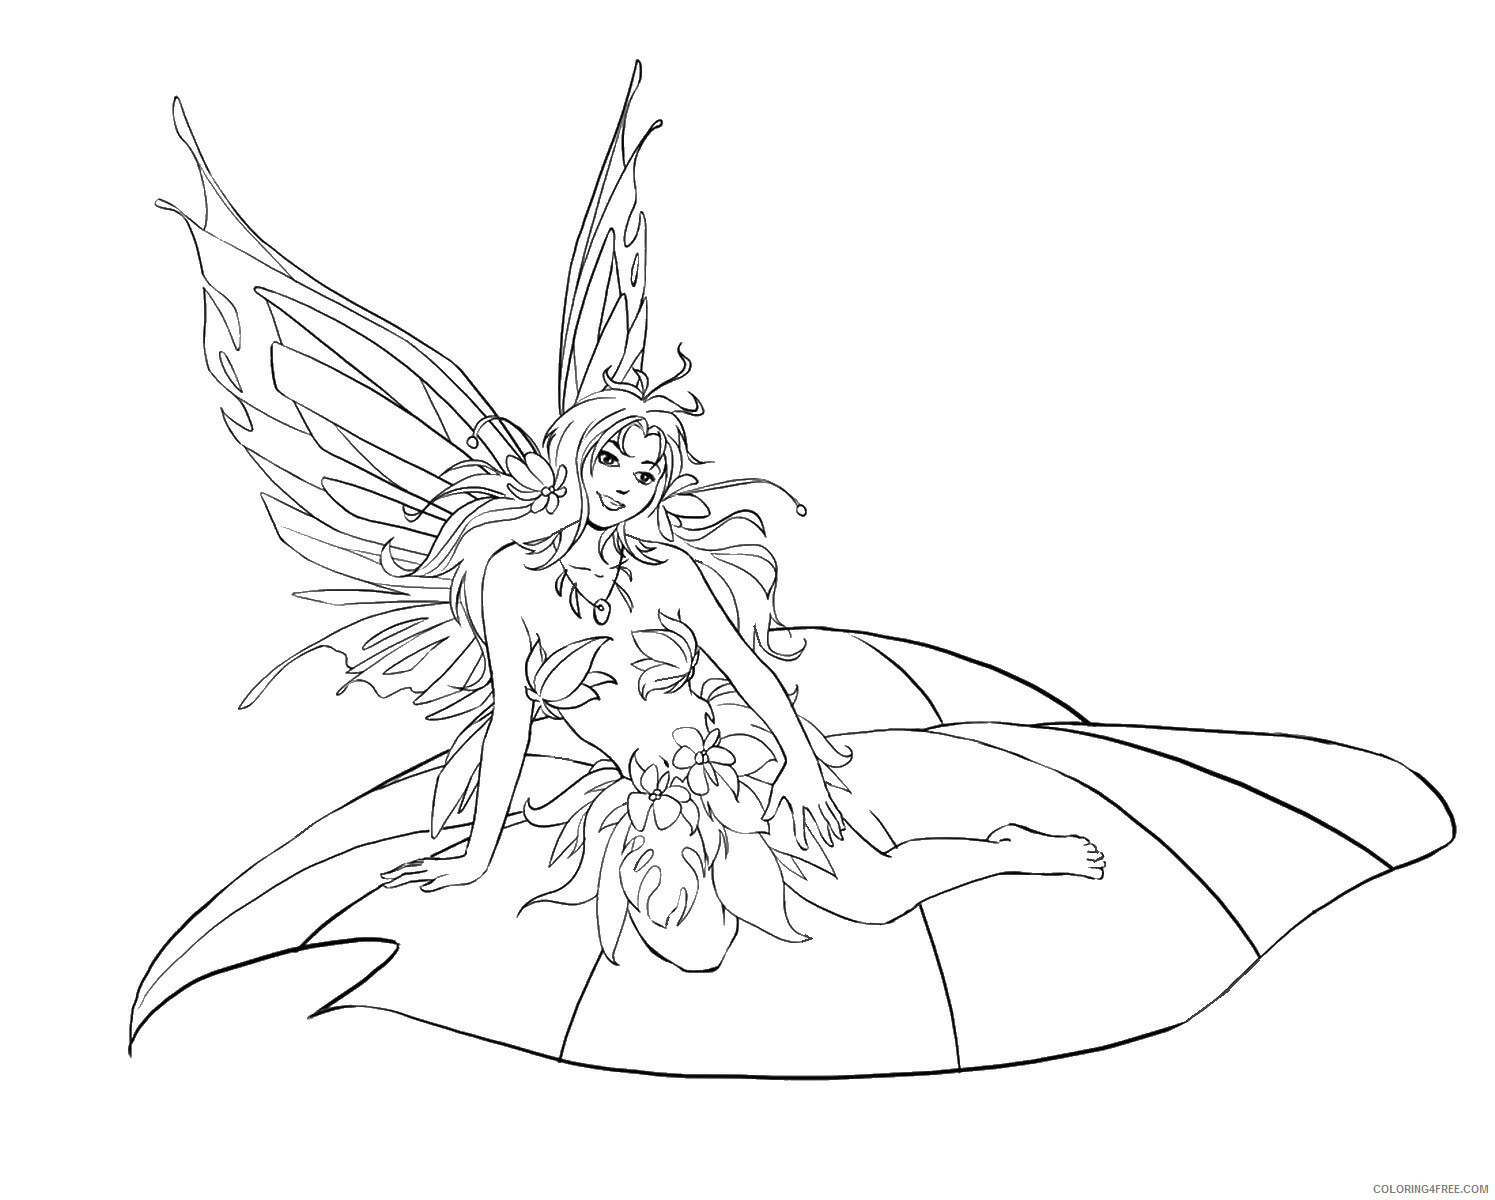 Fairy Coloring Pages fairyc83 Printable 2021 2335 Coloring4free